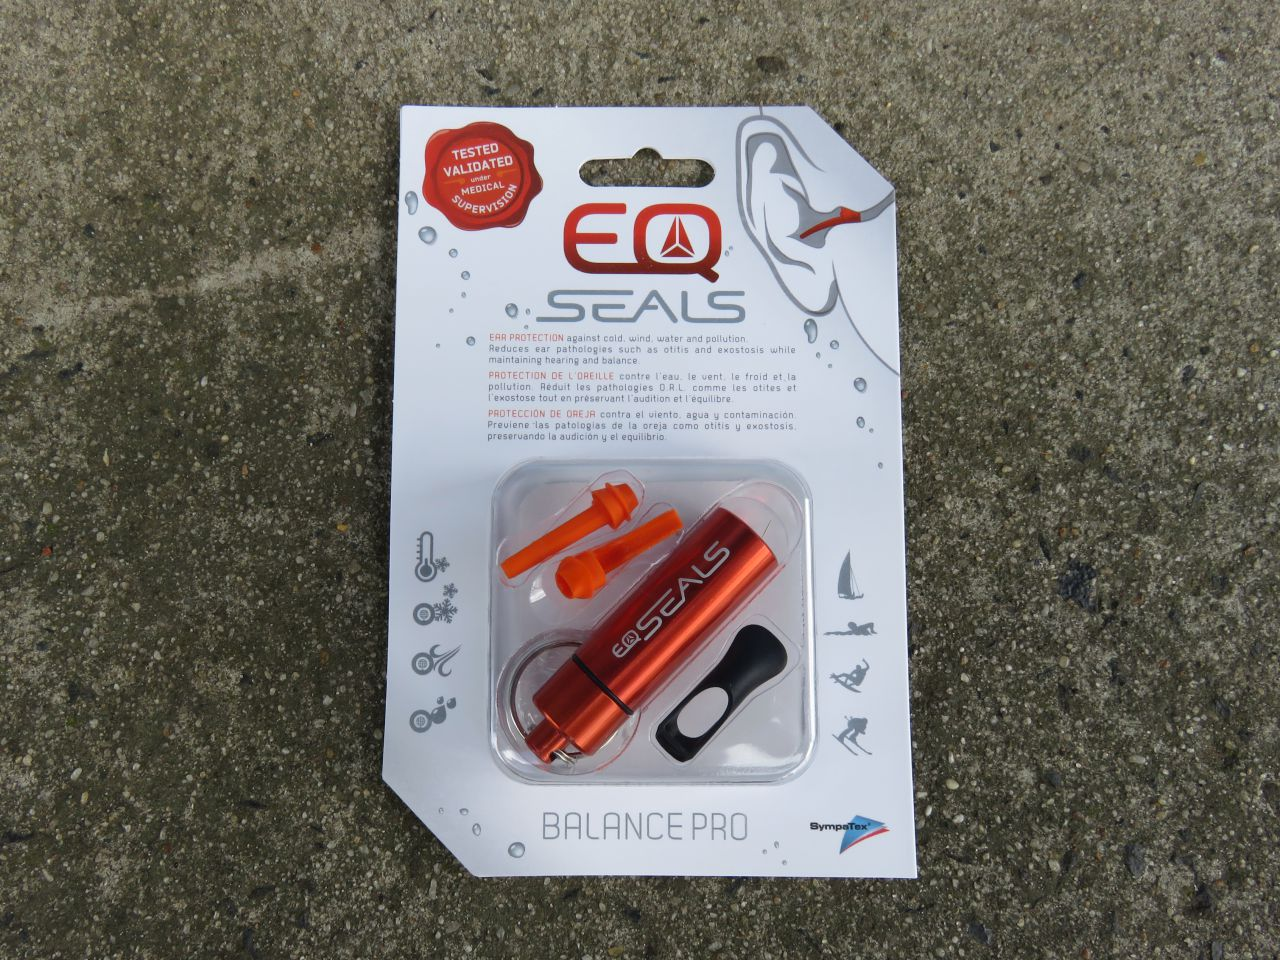 EQ Seals Ear Plugs are back